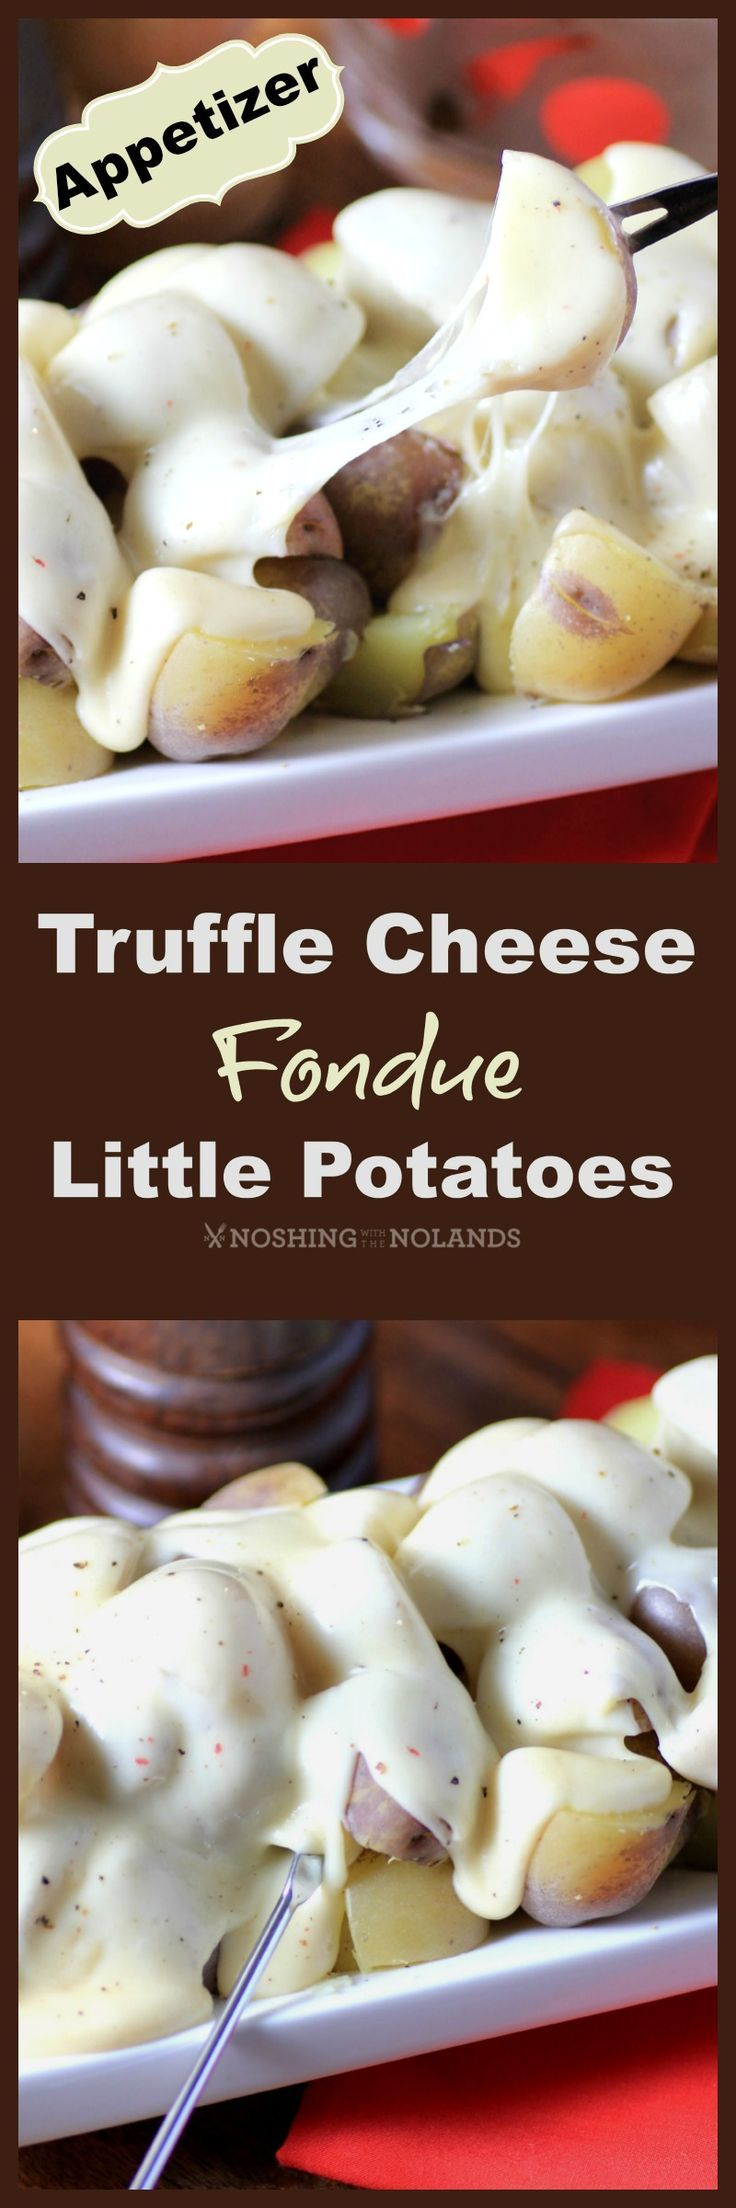 Truffle Cheese Fondue Little Potatoes by Noshing With The Nolands is an exquisite appetizer for the holidays. Their purple Chilean Splash of colour makes them a fun Creamer potato.